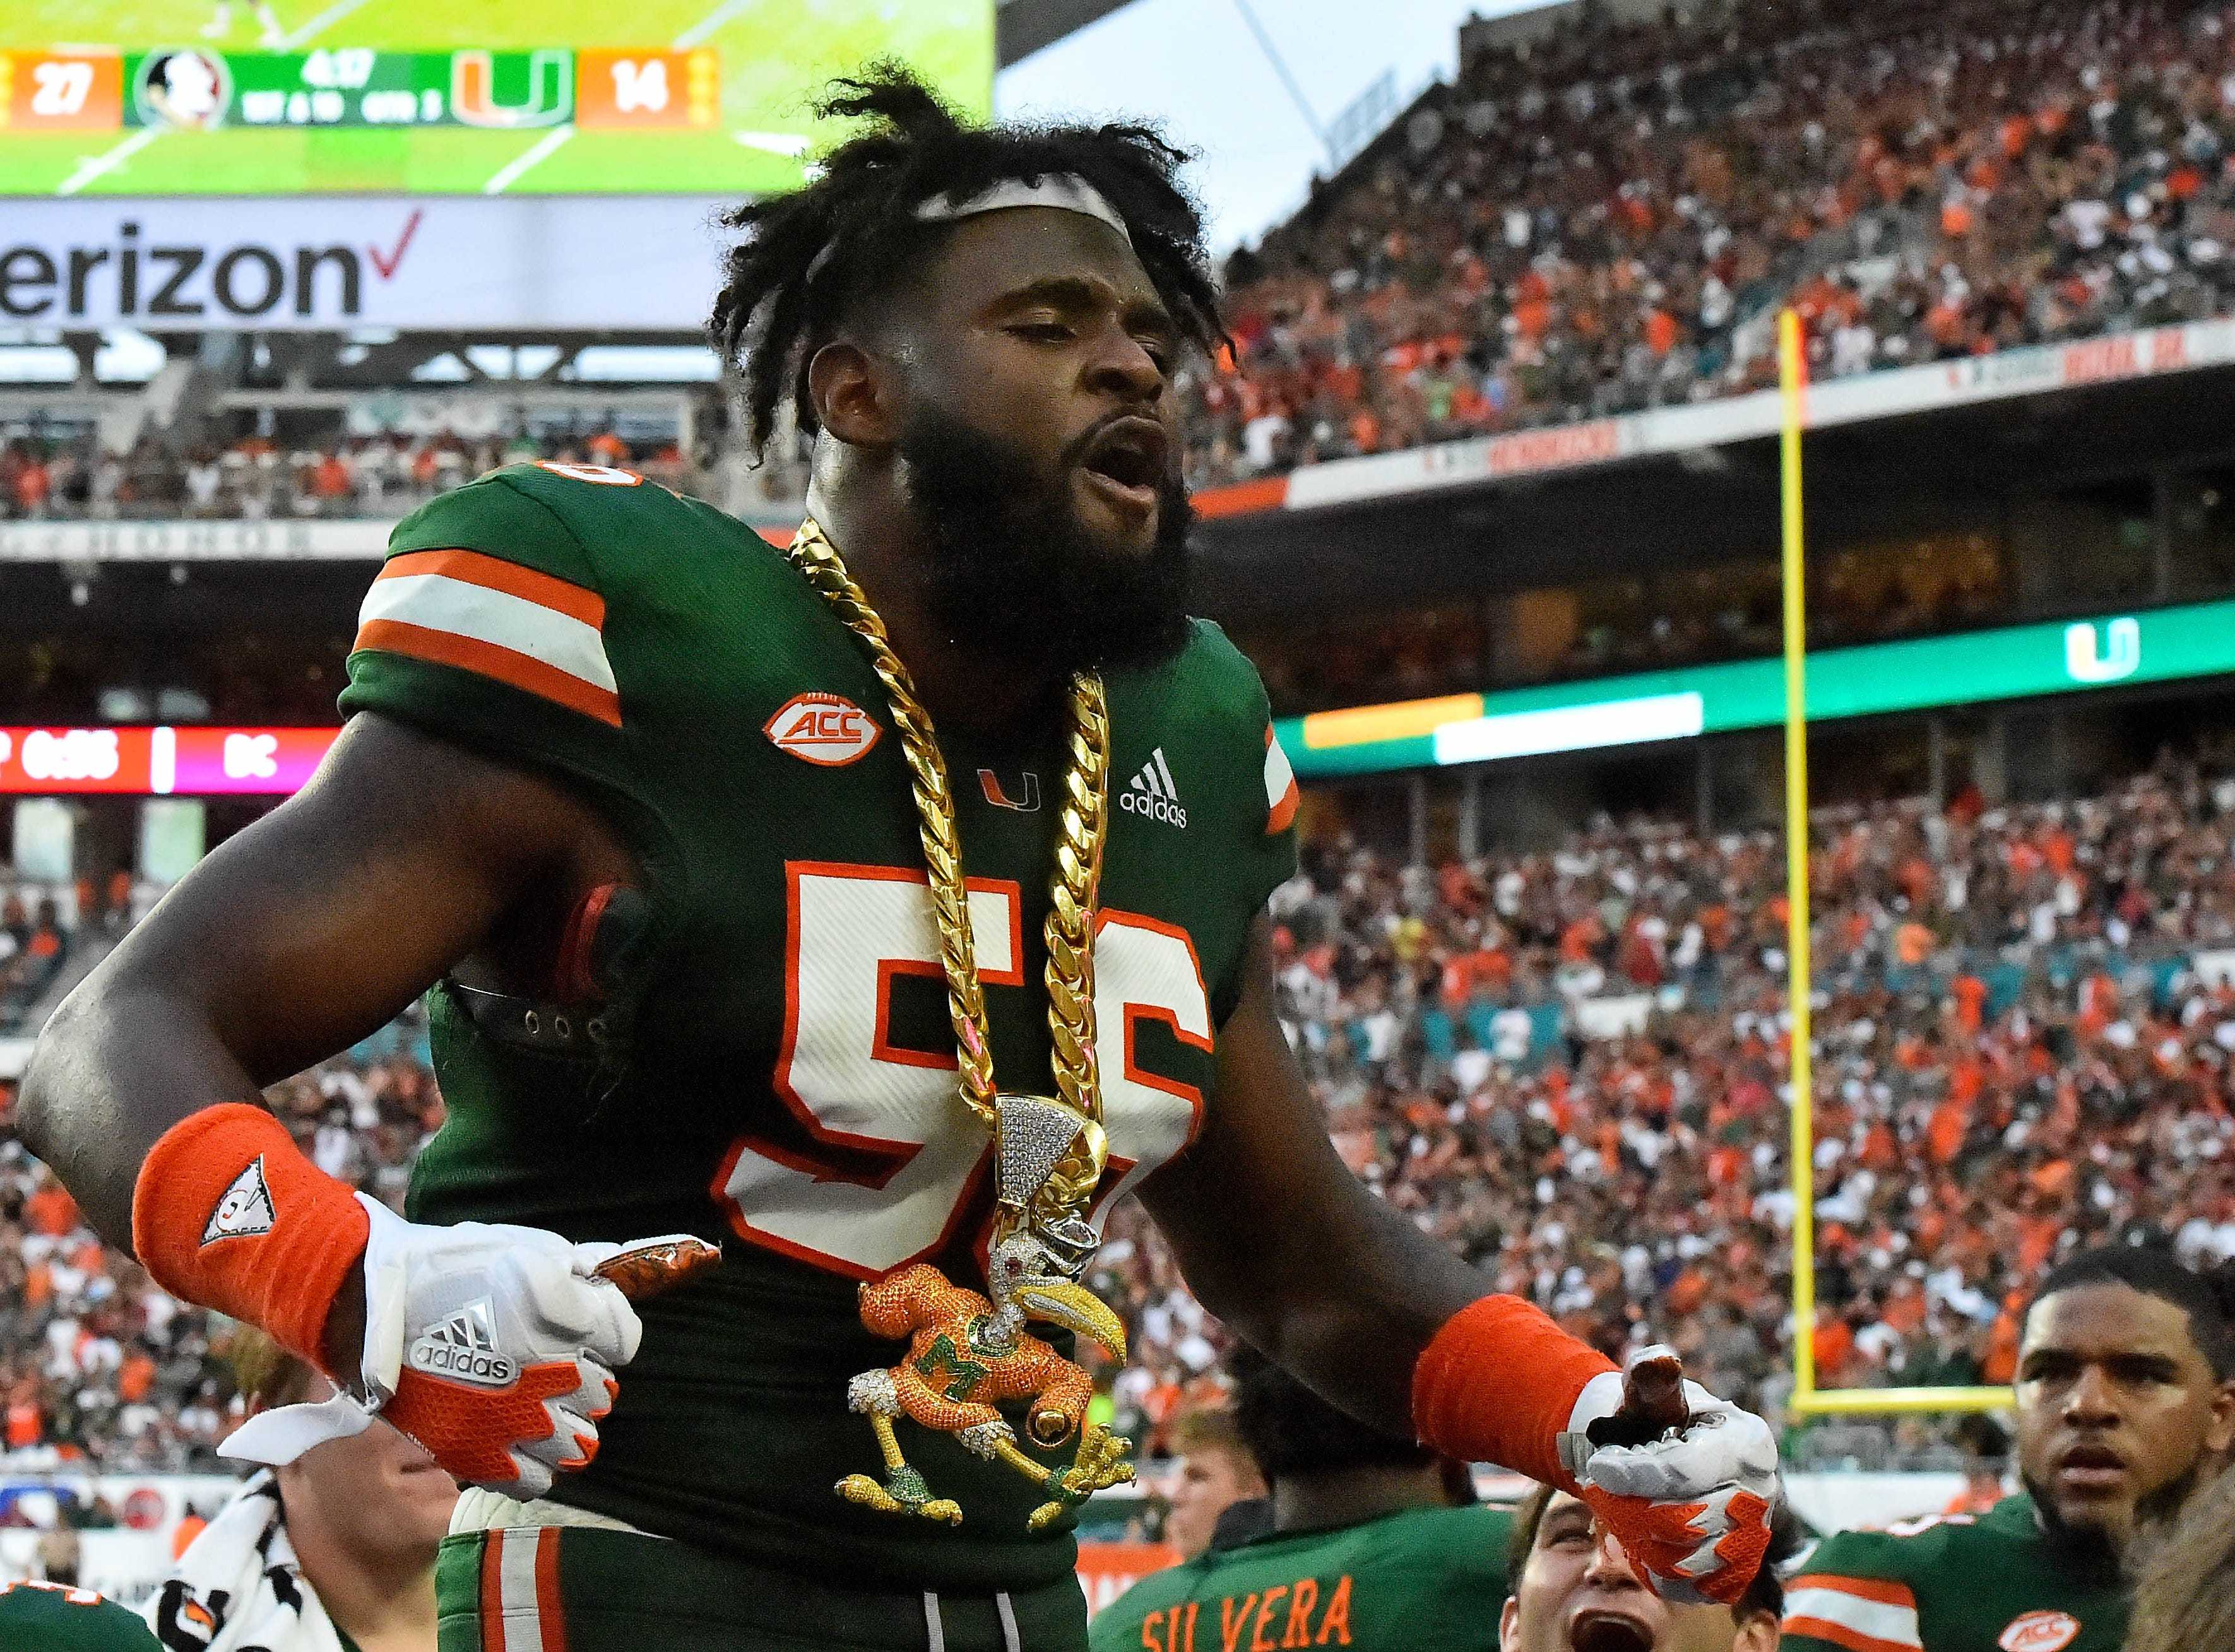 Oct 6, 2018; Miami Gardens, FL, USA; Miami Hurricanes linebacker Michael Pinckney (56) celebrates with the turn over chain after intercepting a pass during the second half against the Florida State Seminoles at Hard Rock Stadium. Mandatory Credit: Jasen Vinlove-USA TODAY Sports